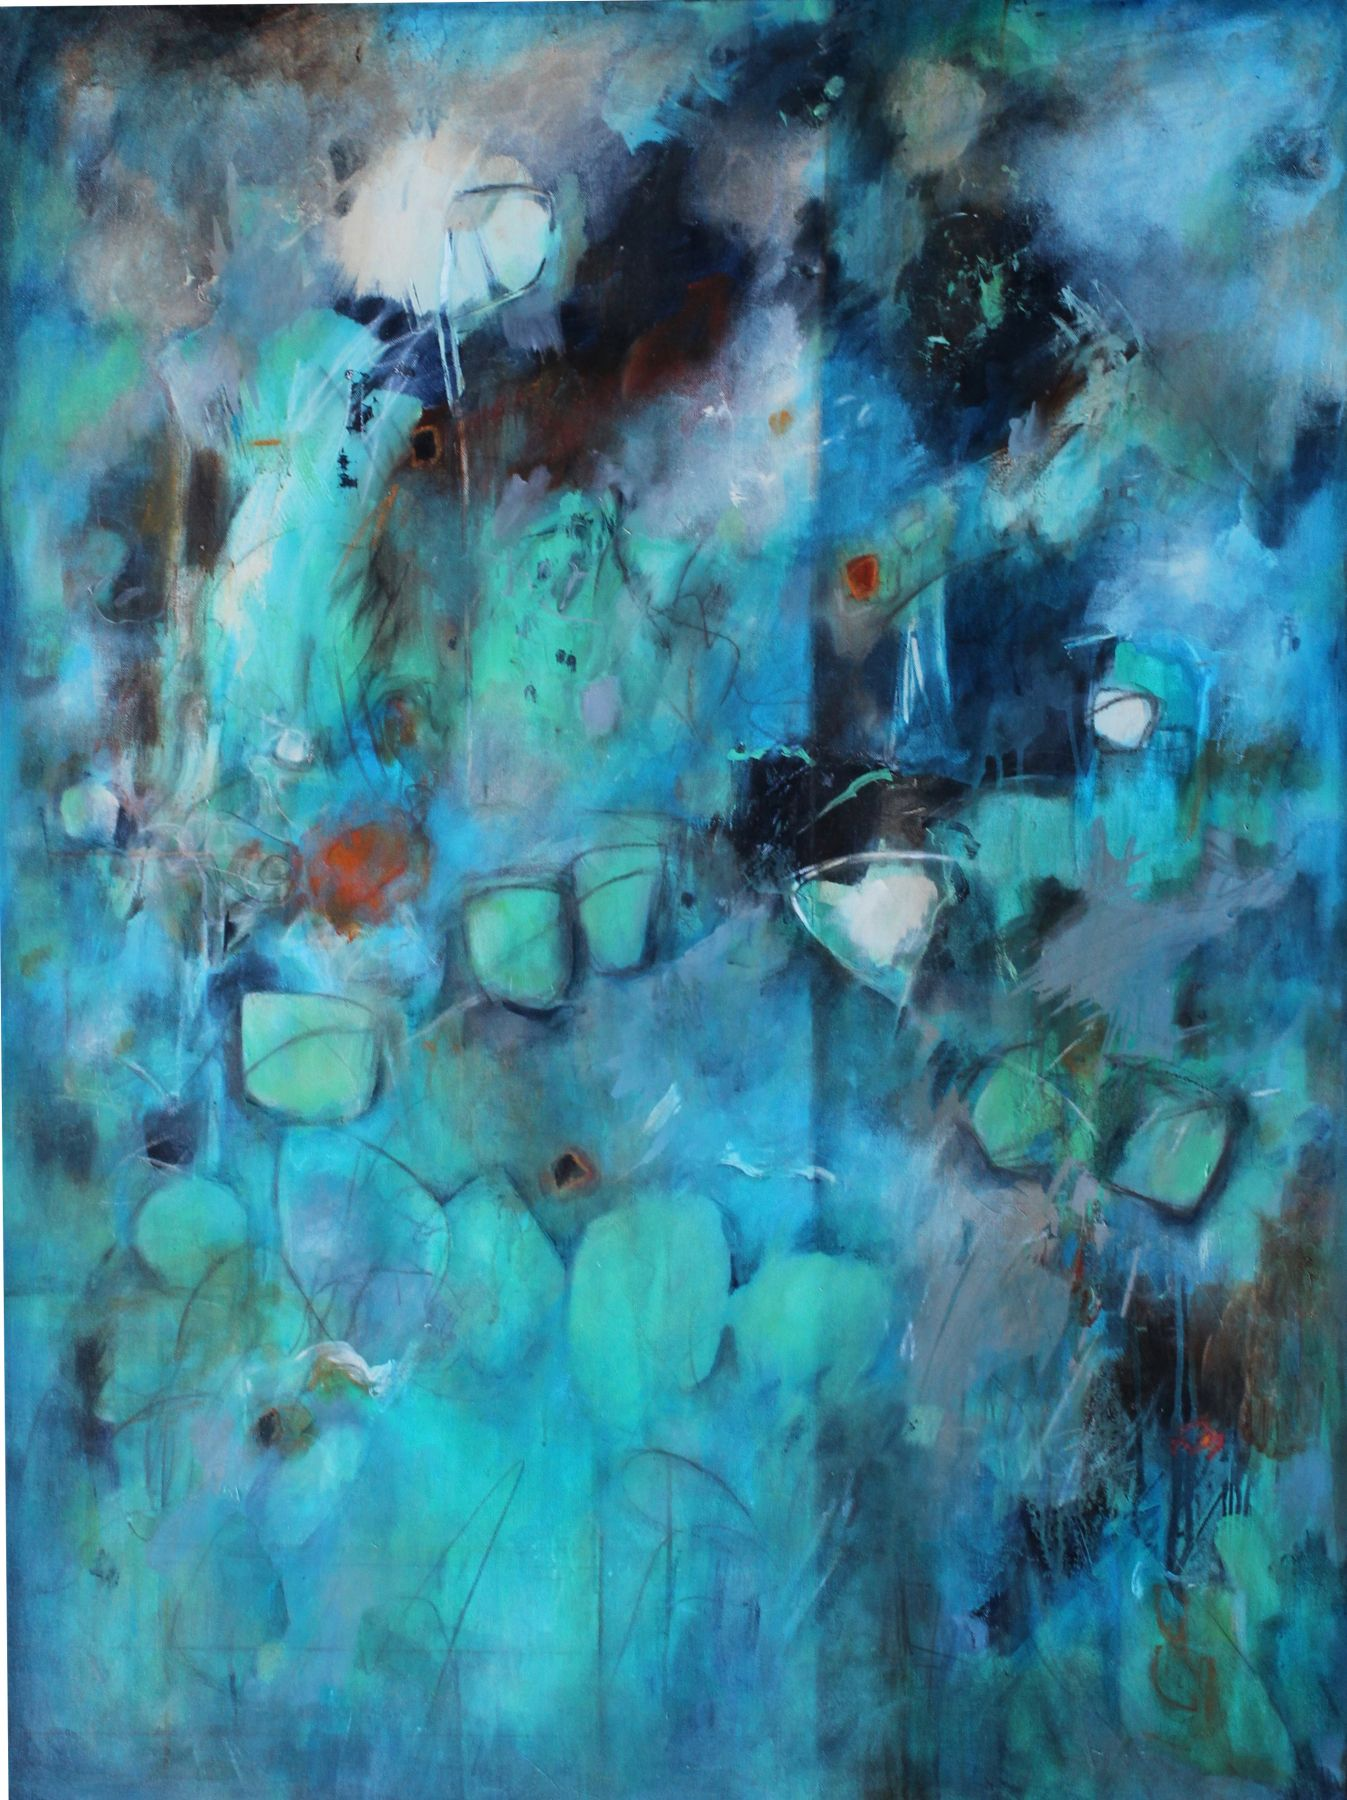 Diane Walker-Gladney, Racoon Dance Party, 2018, Acrylic and graphite on canvas, 48 x 36 inches, Abstract work with multiple hues of blue and turquoise, Diane Walker-Gladney celebrates and paints her childhood experiences and insignificant moments that she feels defines her story.